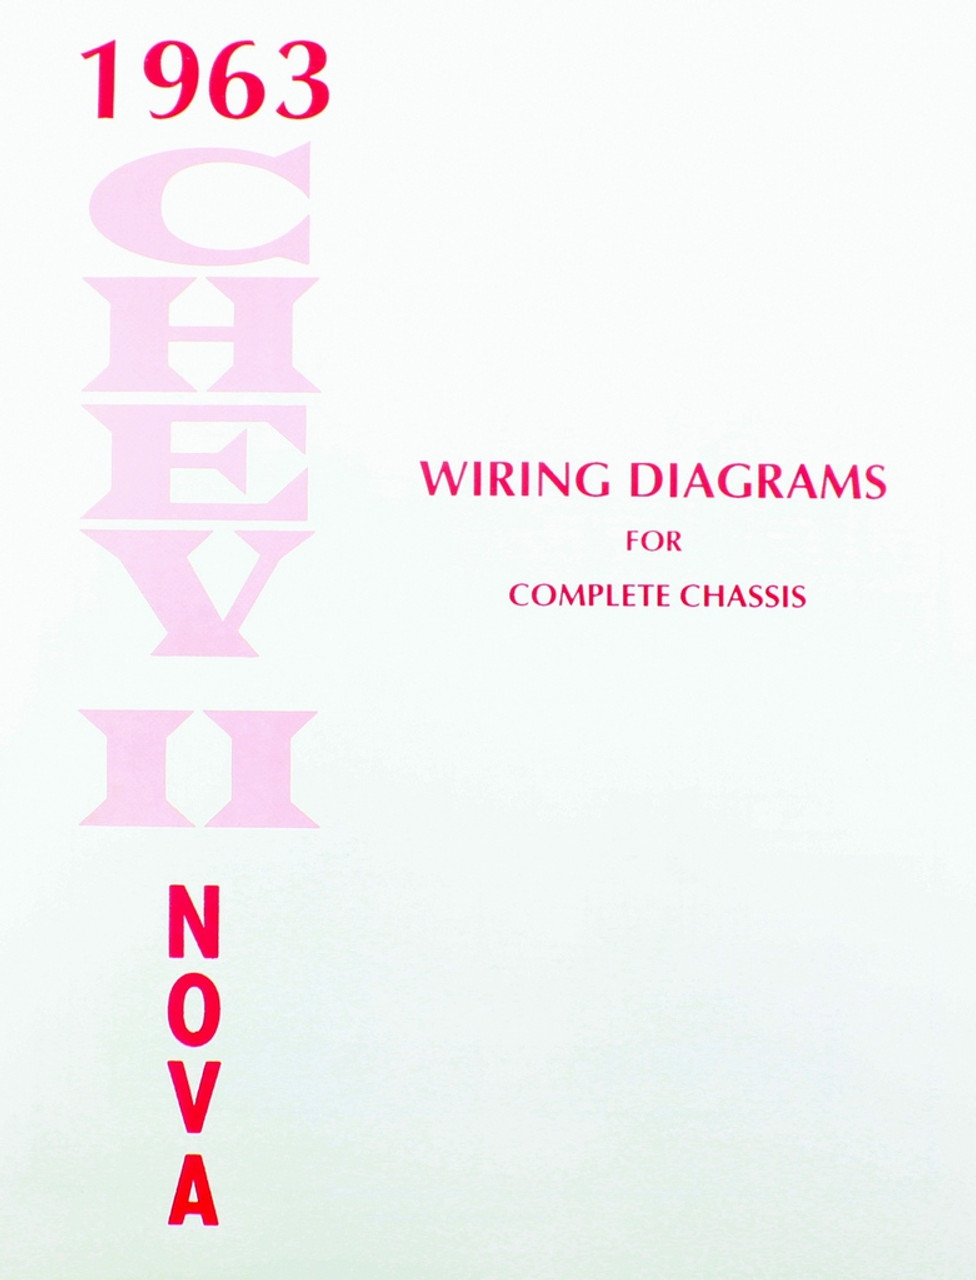 63 1963 chevy nova electrical wiring diagram manual i 5 classic chevy rh i5chevy com Yamaha Motorcycle Schematics Ford Wiring Schematic